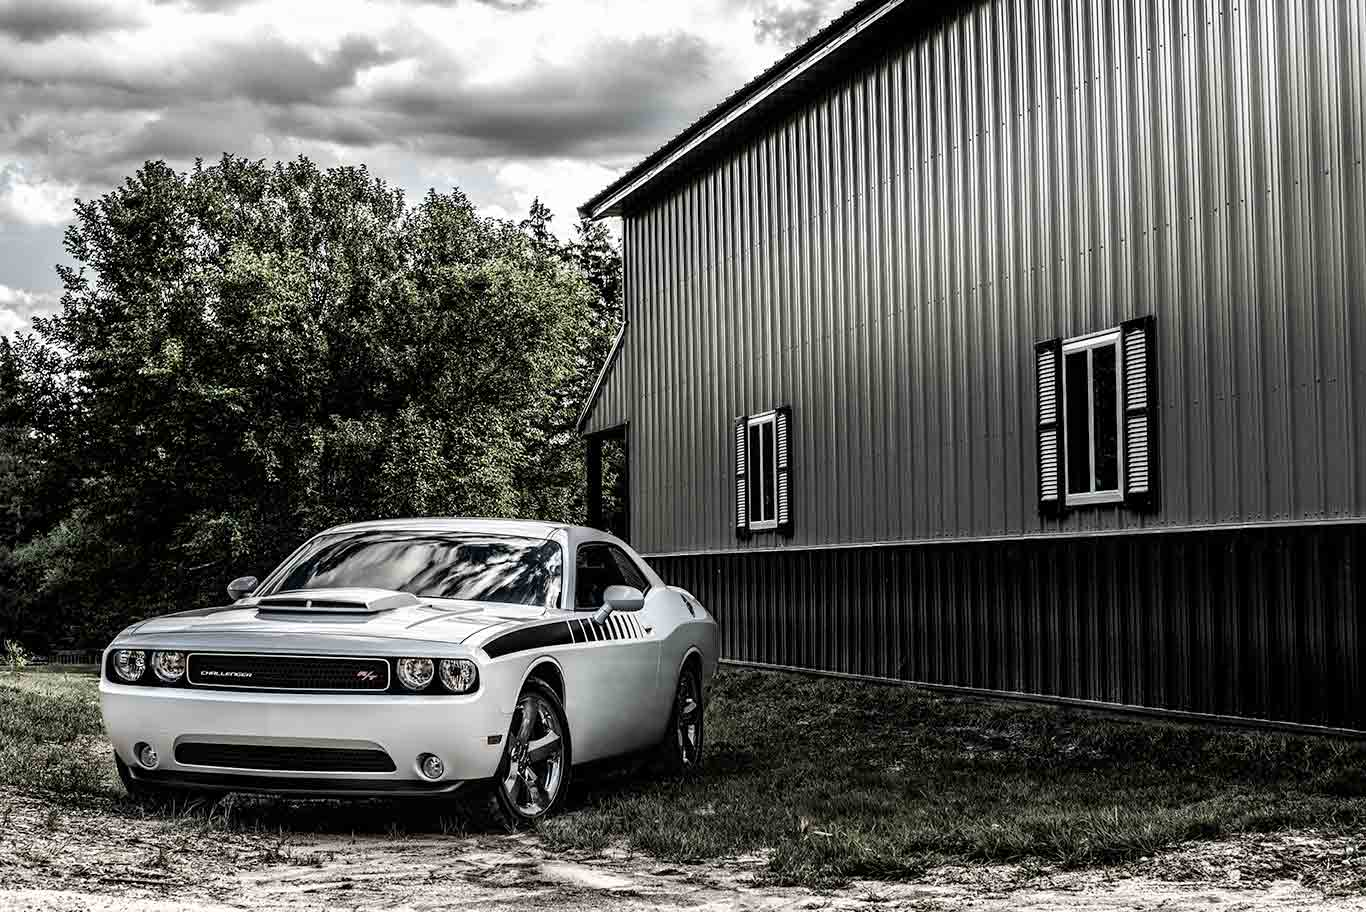 Dodge Challenger R-T. Boston automotive photographers | RobyFabro